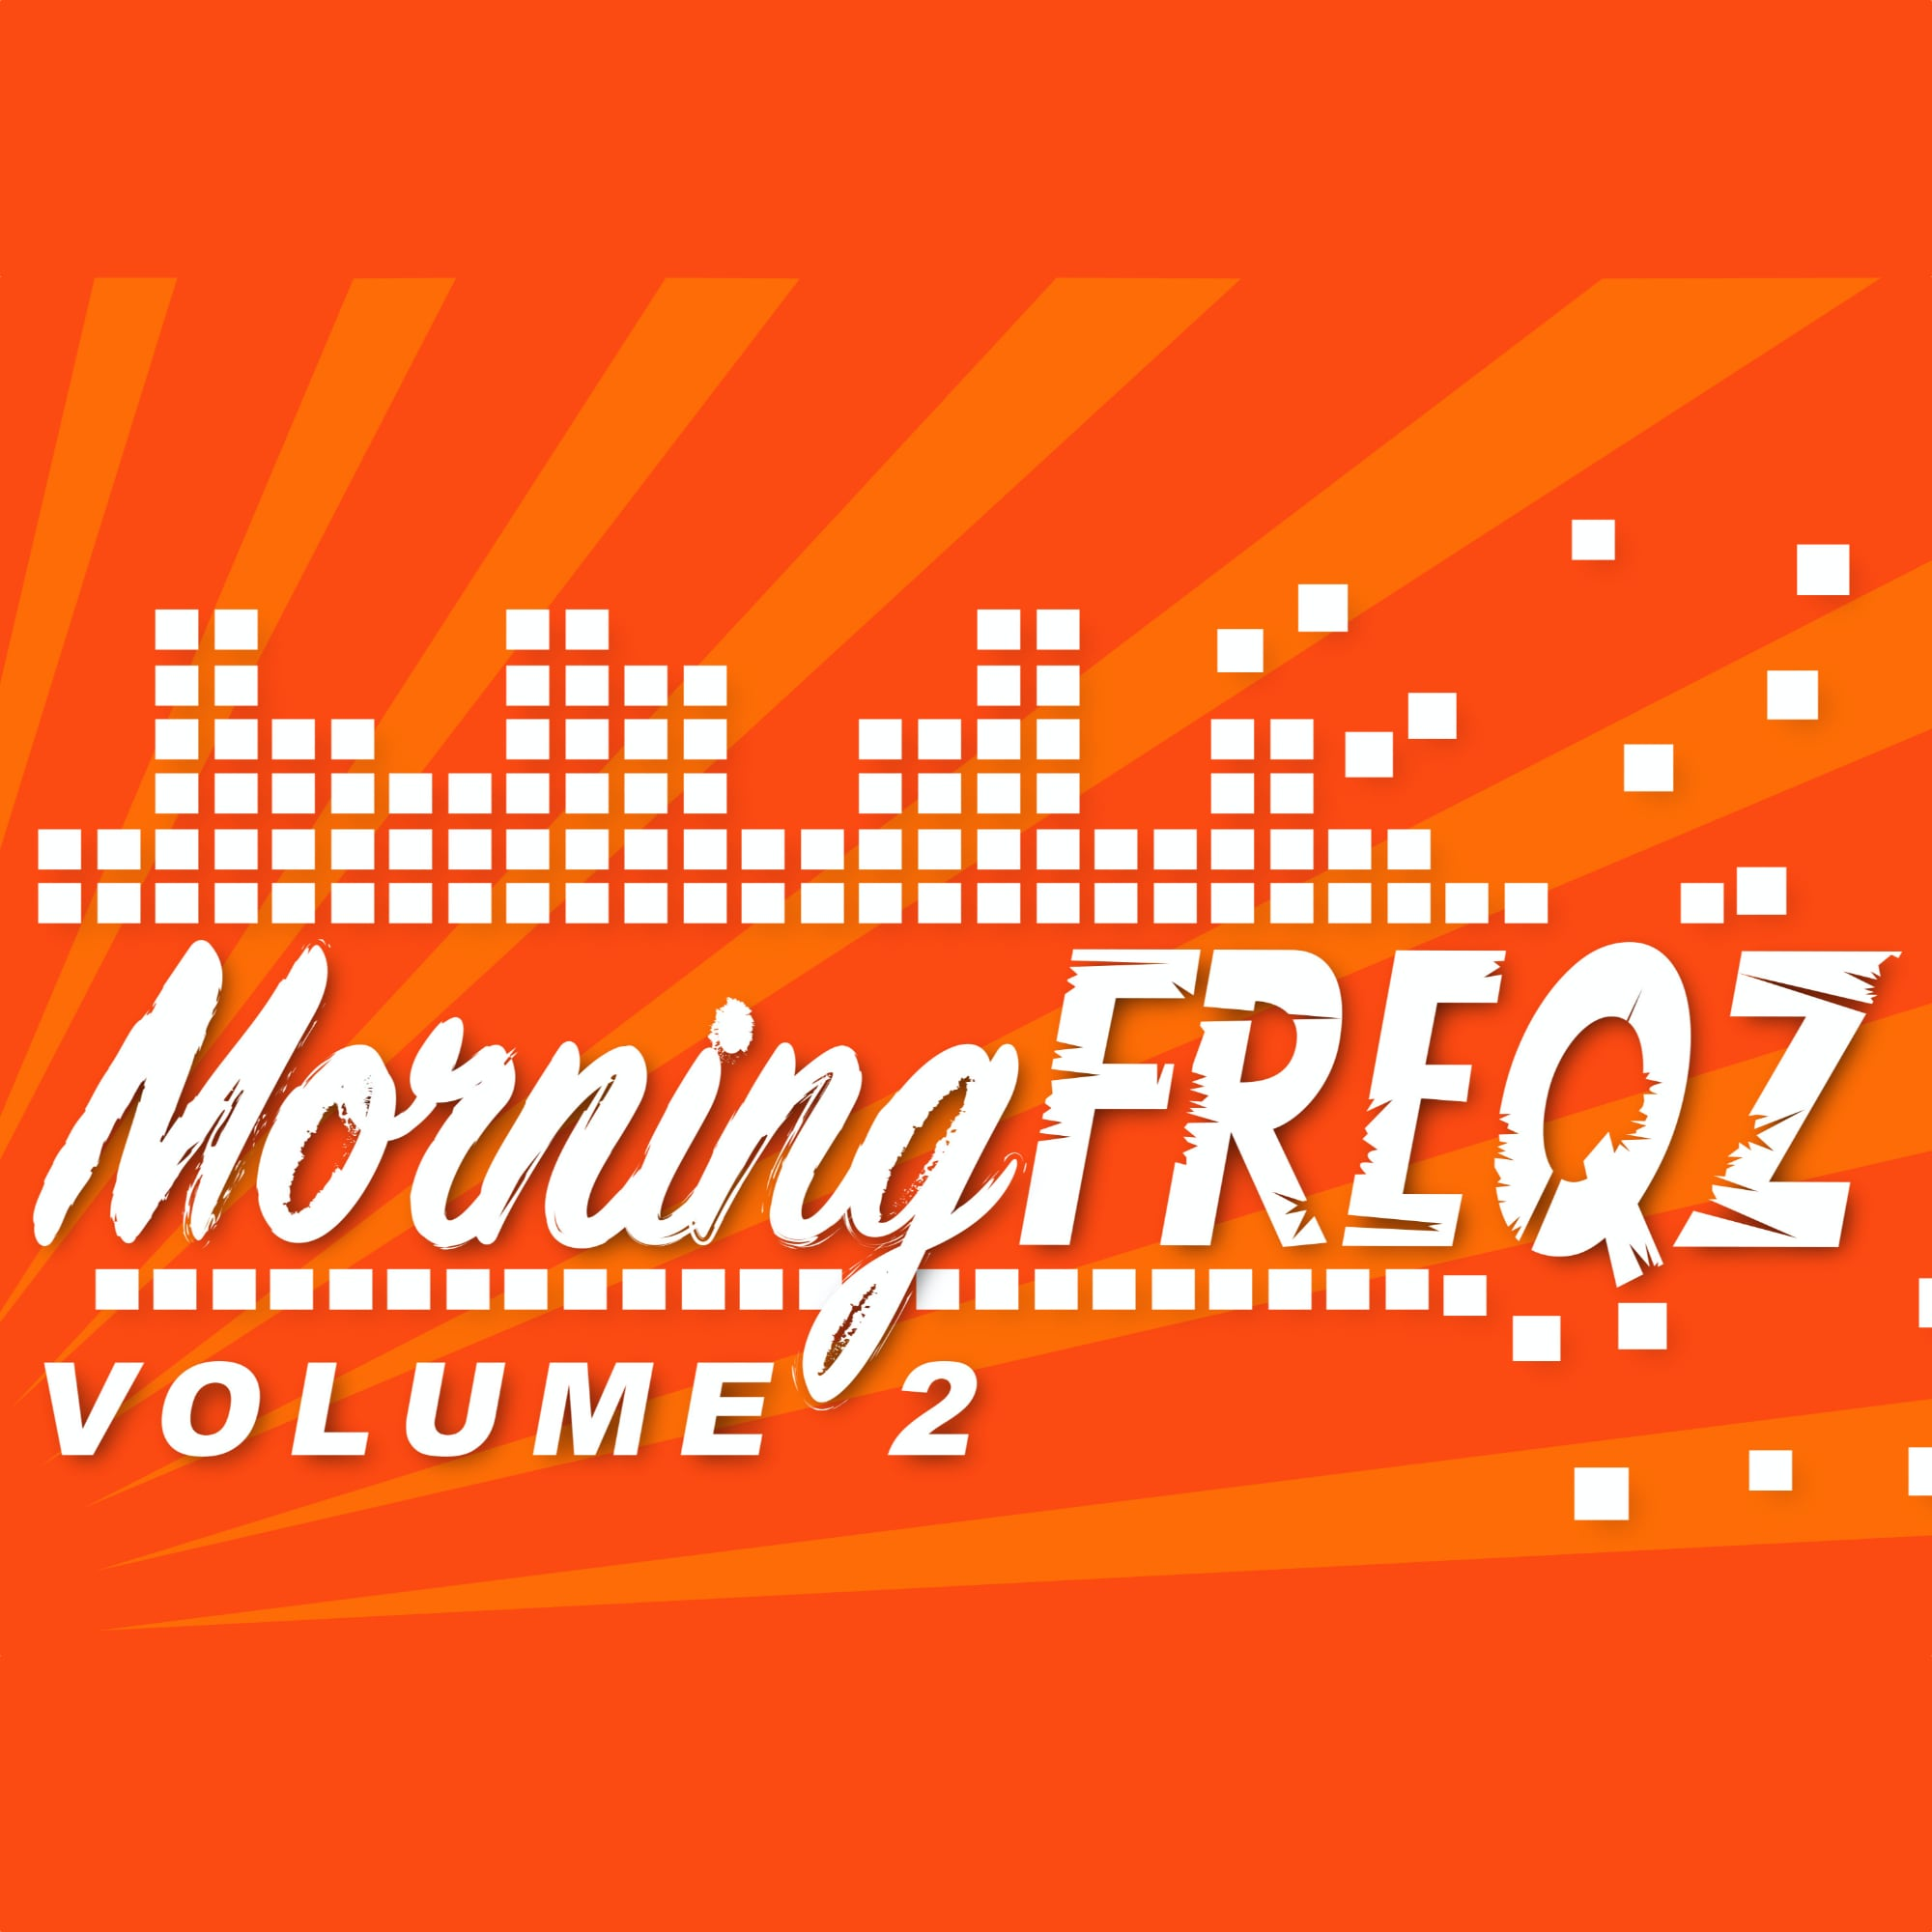 morning freqz imaging library